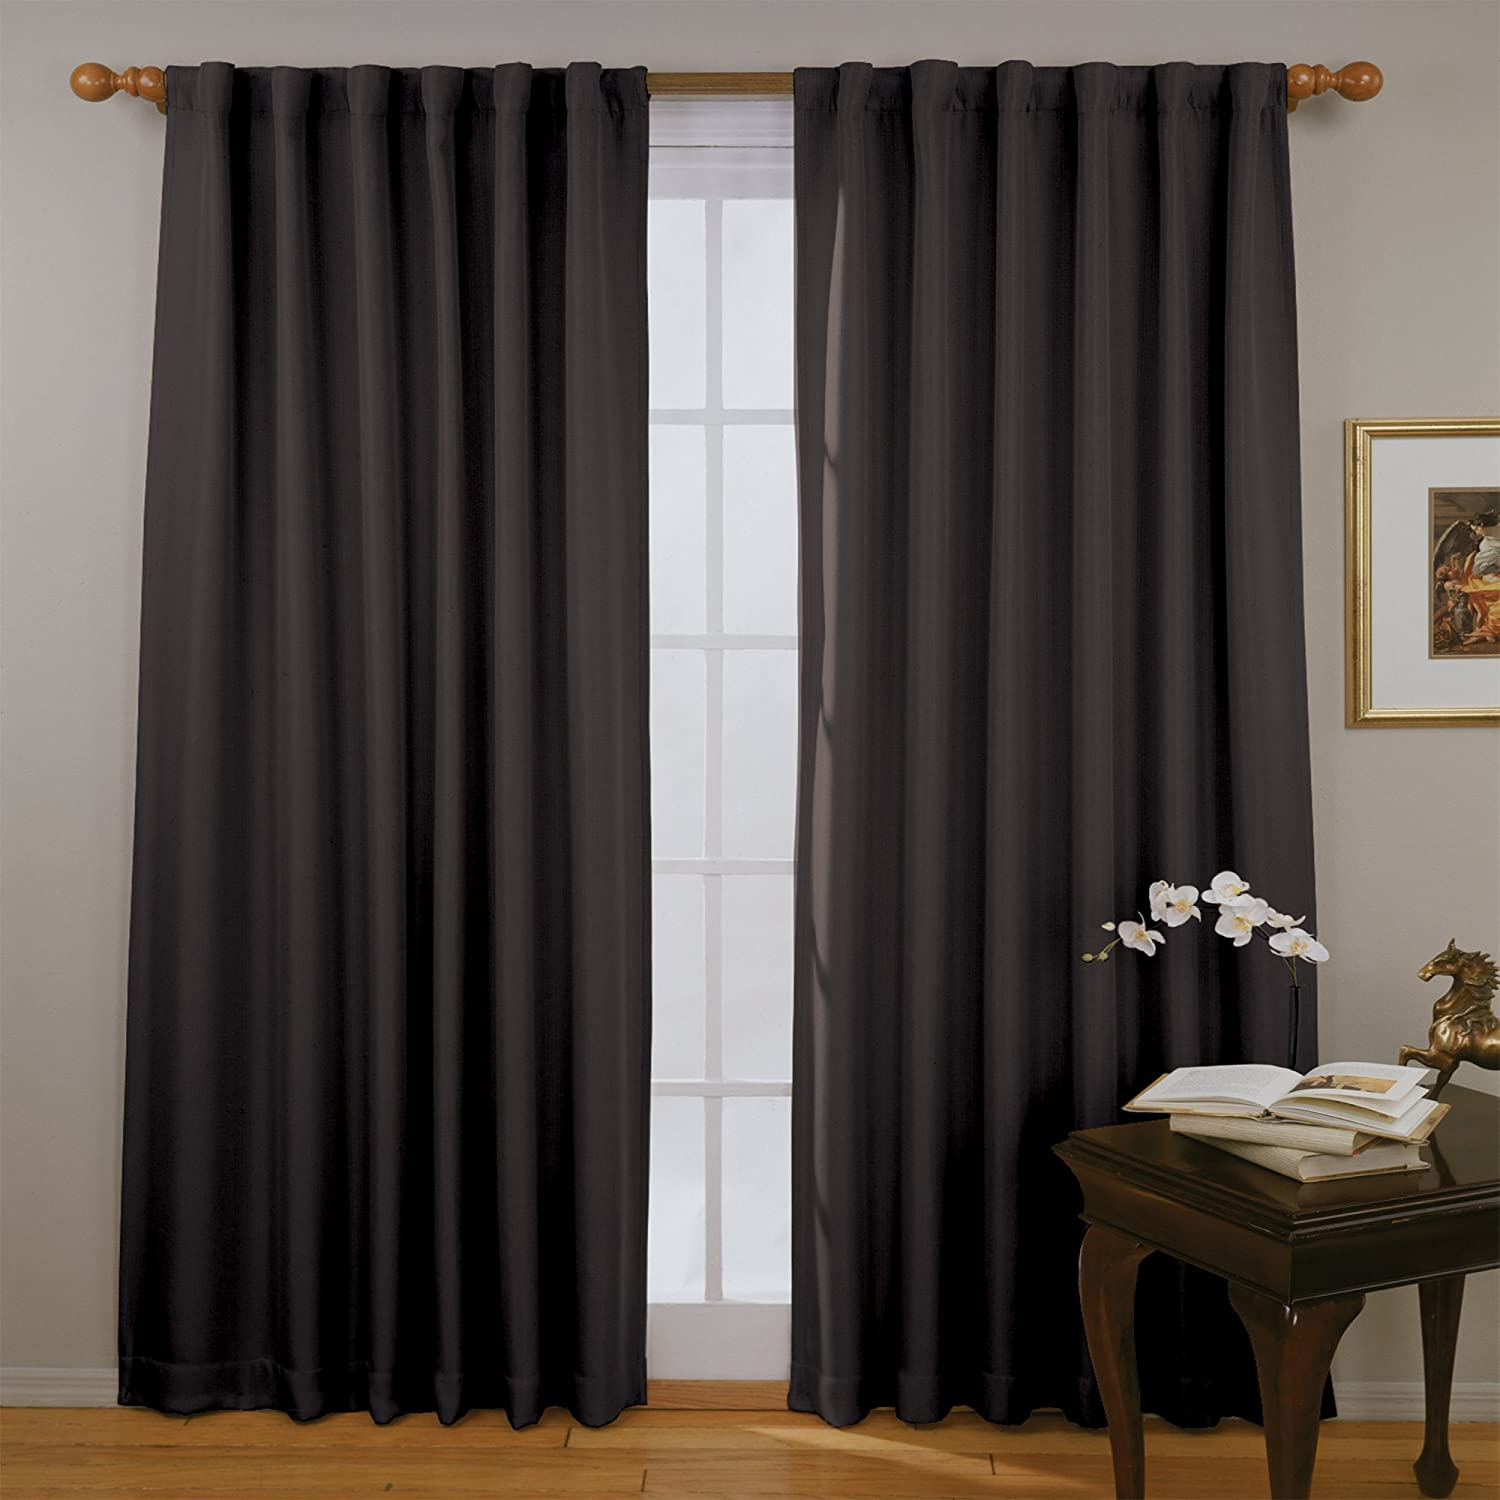 ECLIPSE Fresno Thermal Insulated Single Panel Rod Pocket Darkening Curtains for Living Room